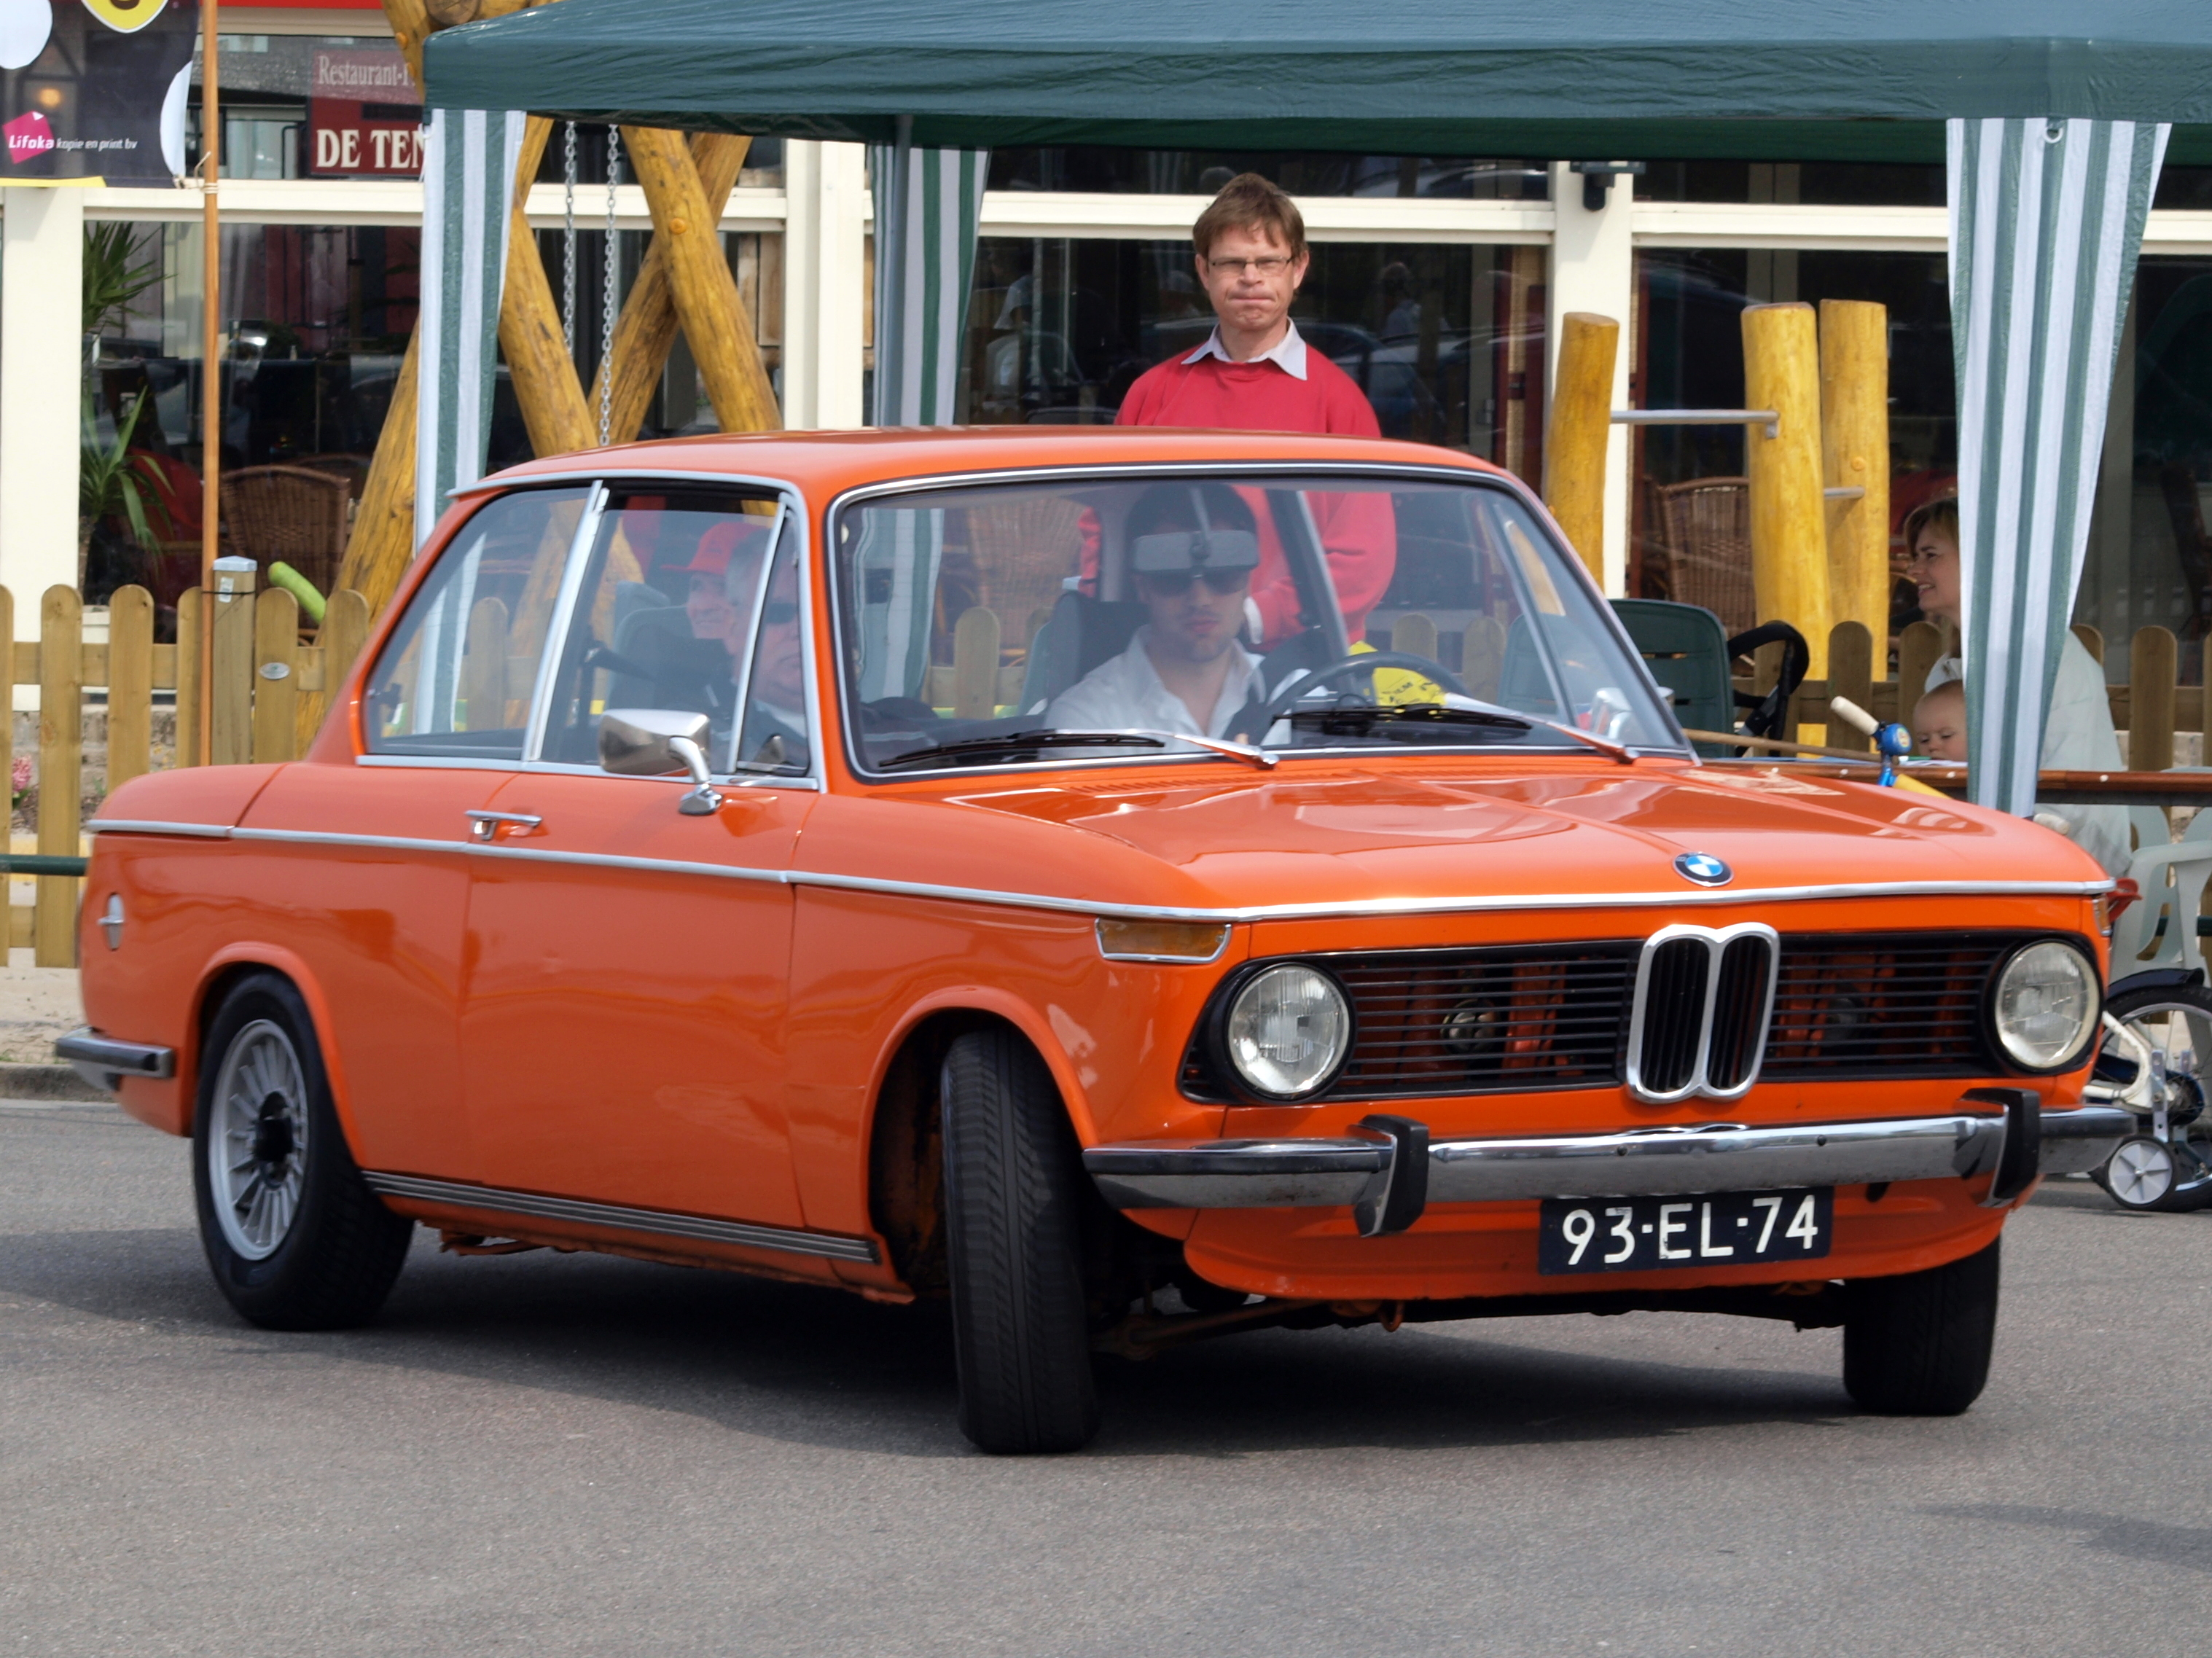 BMW_2002_%281974%29_%2C_Dutch_licence_re